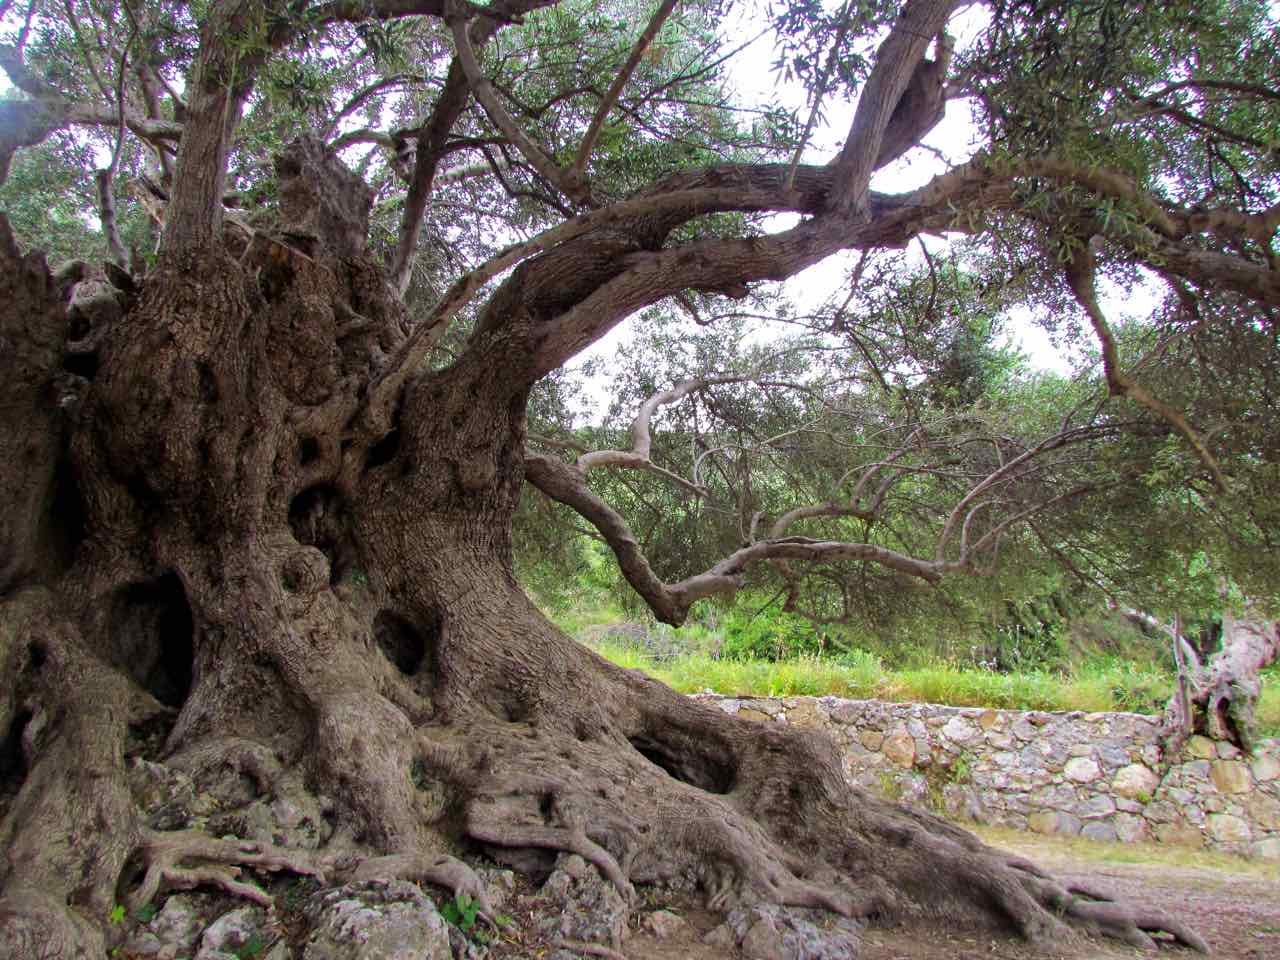 Walking Tour & Visiting Ancient Olive Tree Kavousi Crete, azoria ancient city crete, kavousi village activities, crete alternative activities, things to do crete, ancient olive tree greece europe, trekking Natura landscape, archeological site of Azorias, visiting old kafenio crete